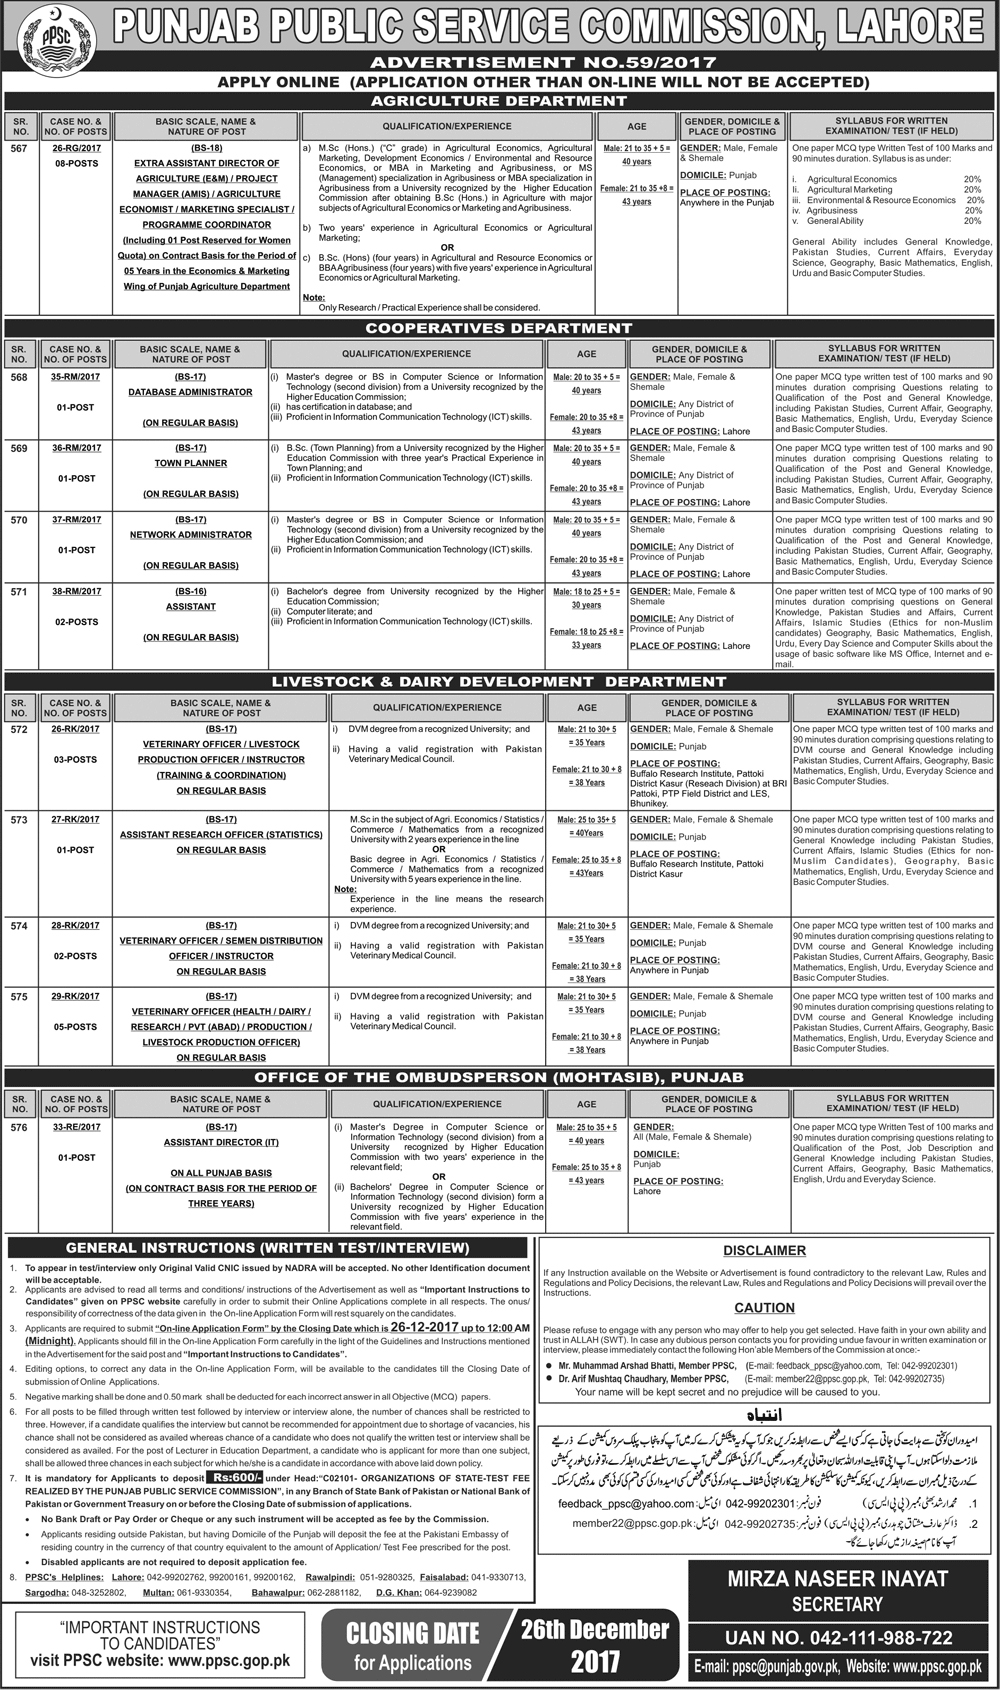 PPSC (Punjab Public Service Commission) 25 Jobs 10 December 2018 Jang Newspaper